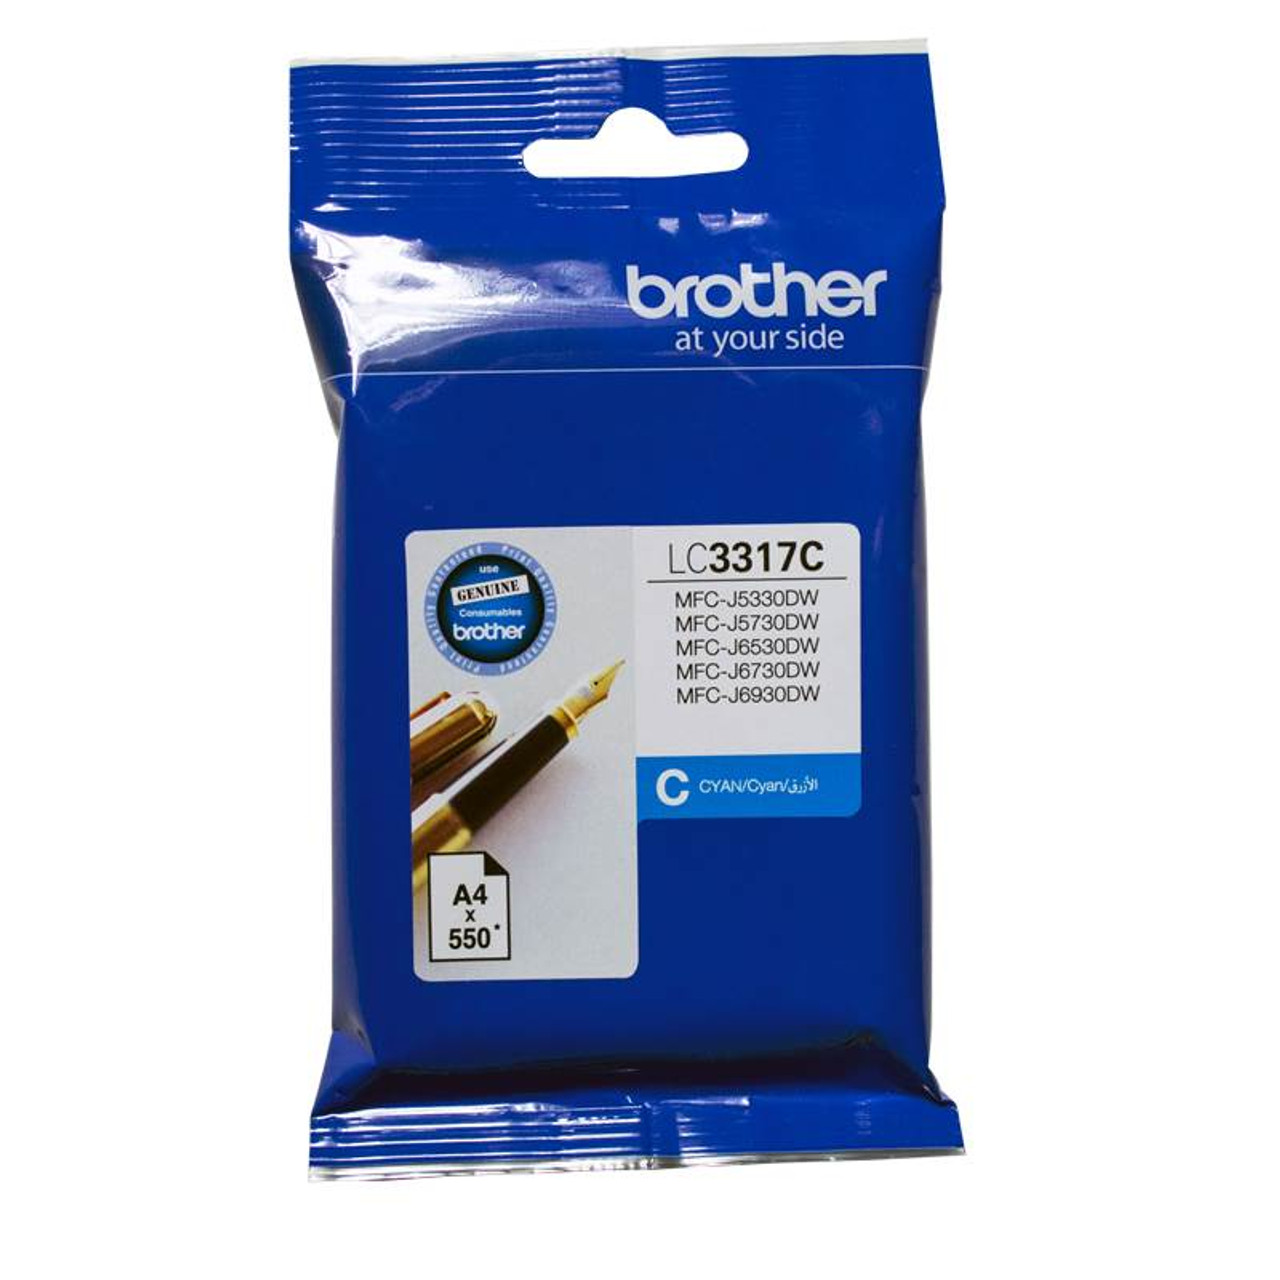 Image for Brother LC-3317C Cyan Ink-jet Cartridge CX Computer Superstore